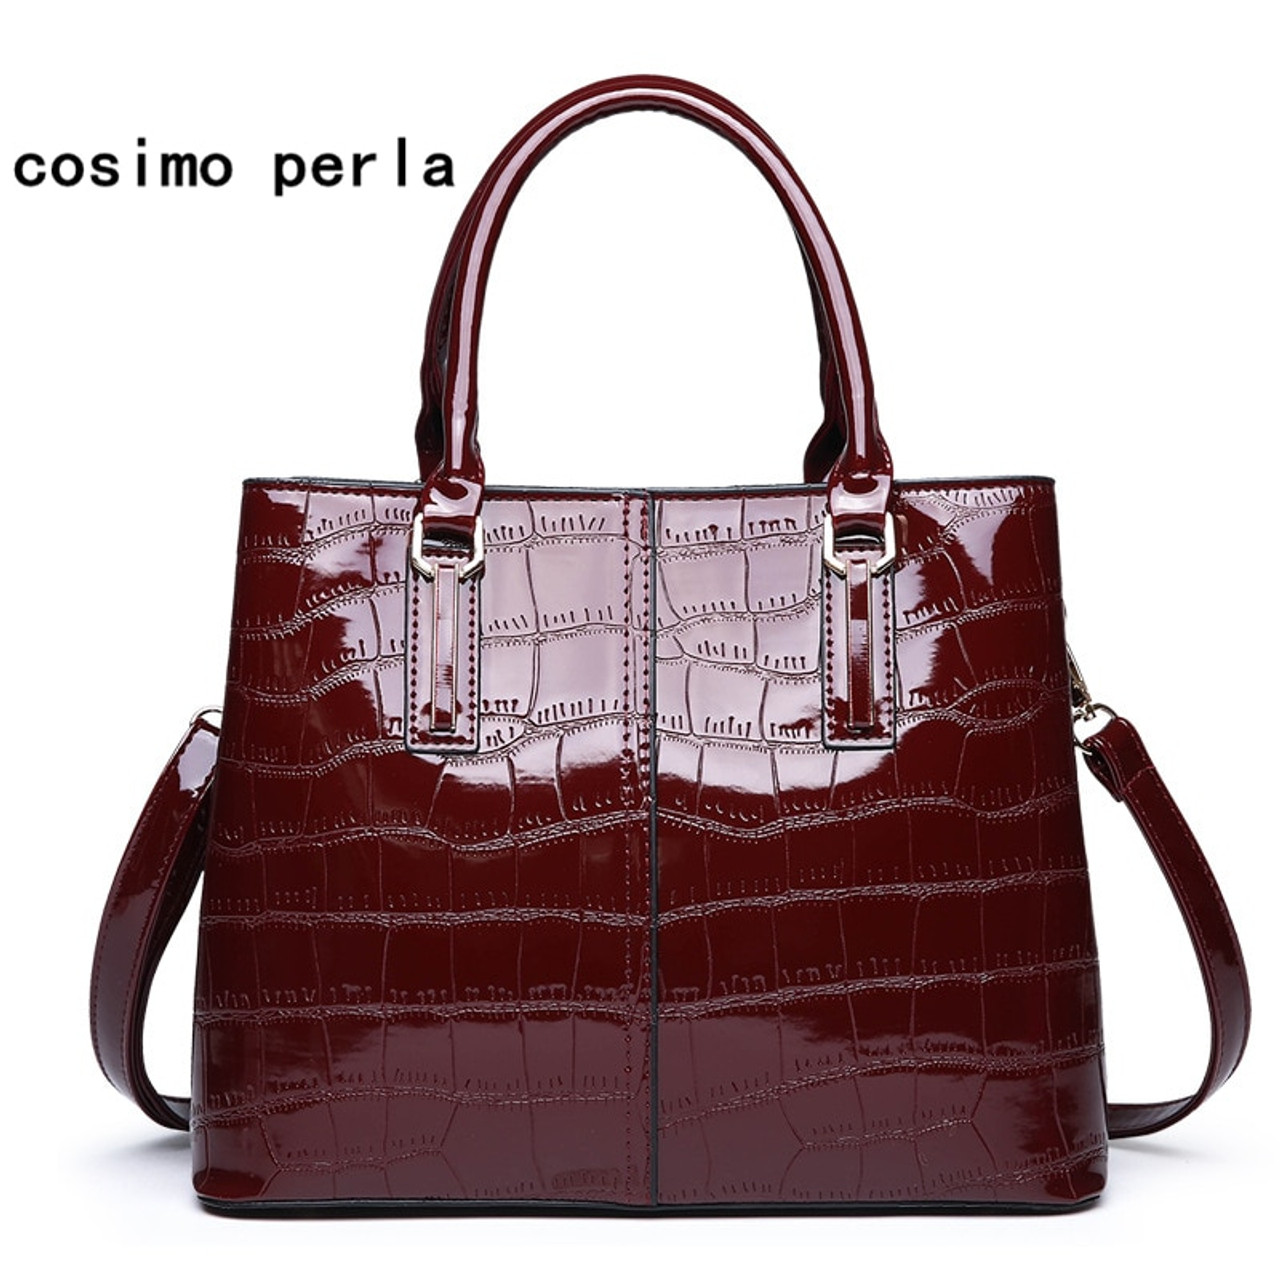 896084c686 European Fashion Patent Leather Tote Bag 2019 Winter New Dress Women  Shoulder Crossbody Bags Large Alligator ...